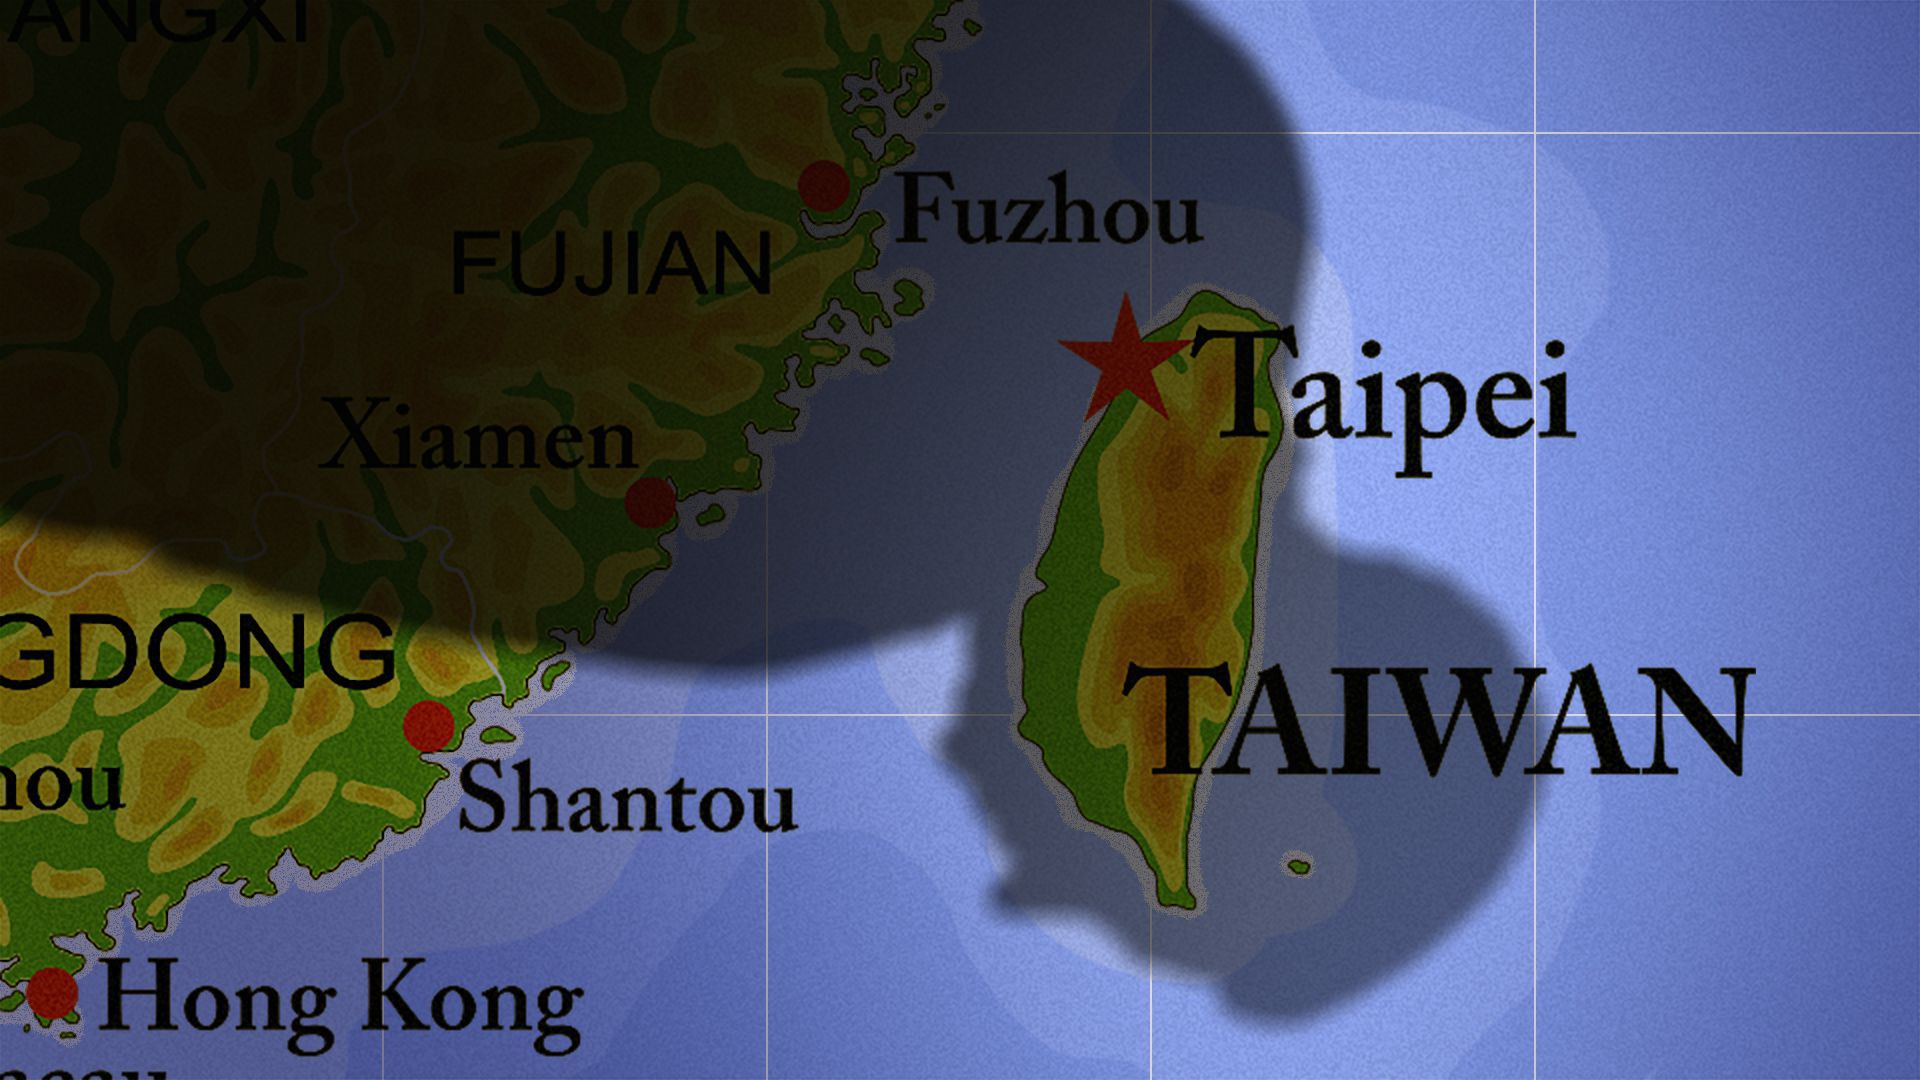 llustration of a map of the coast of China and Taiwan, with a giant shadow of Xi Jinping looming over it